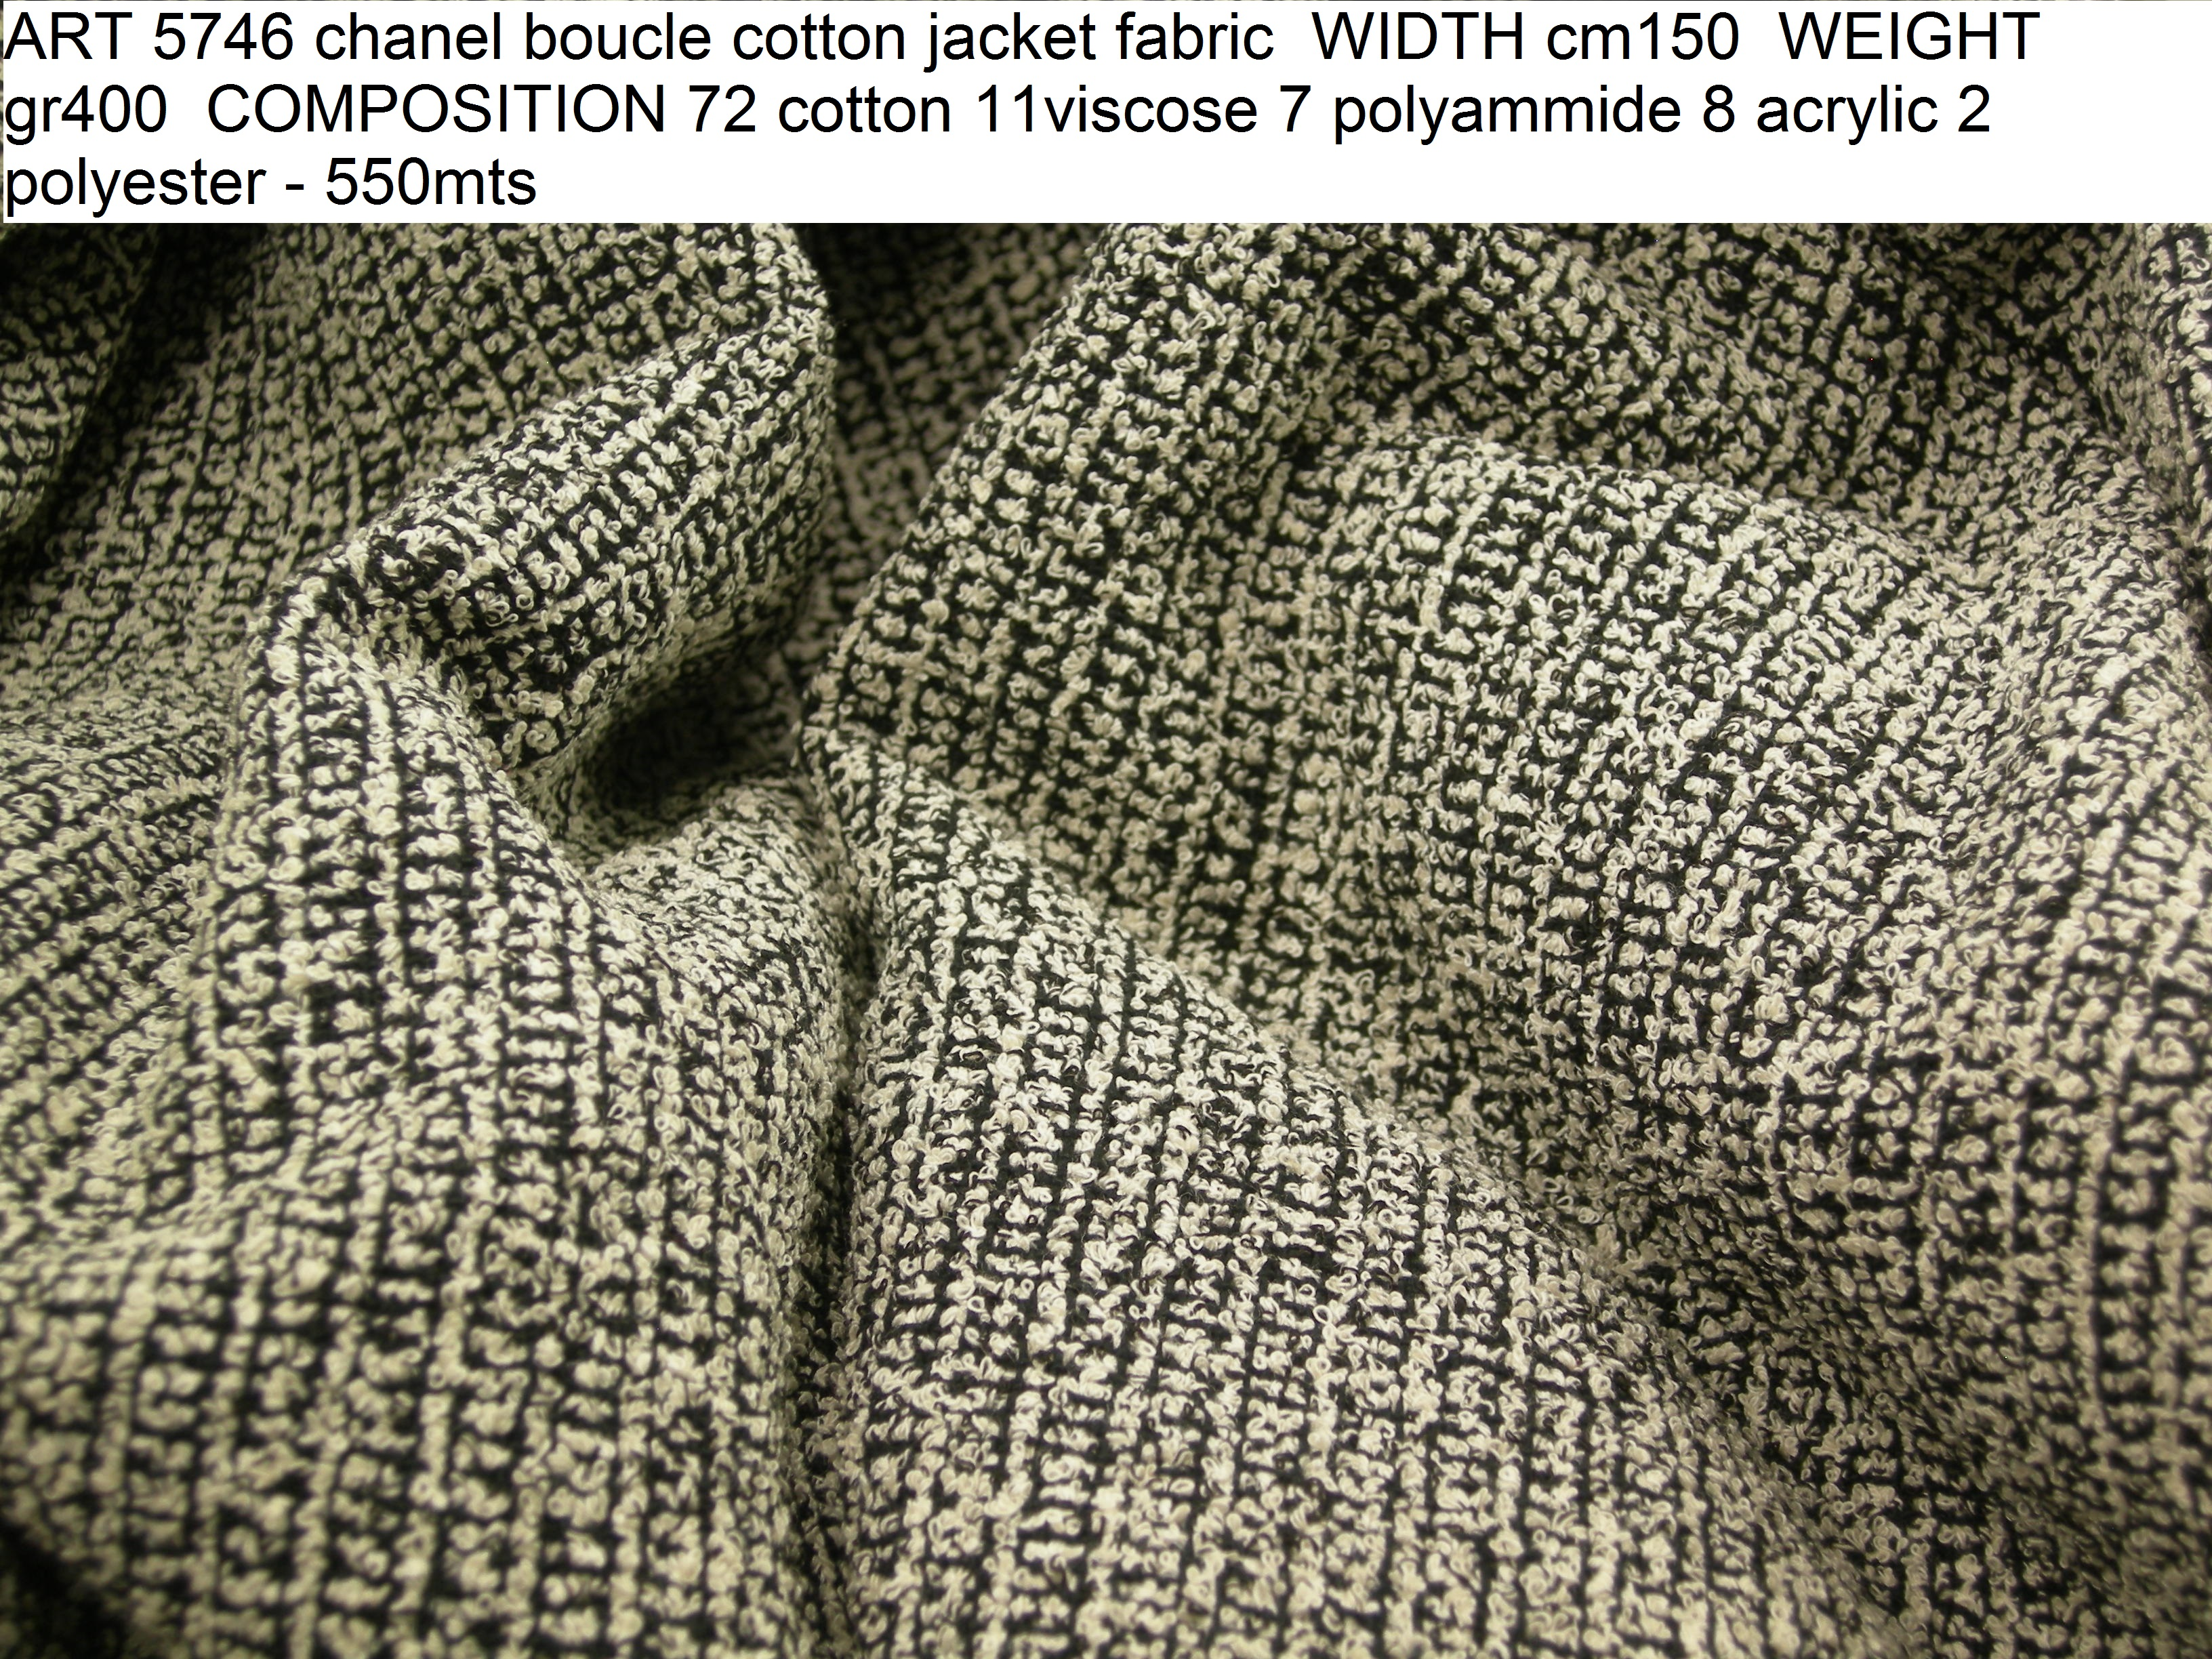 ART 5746 chanel boucle cotton jacket fabric WIDTH cm150 WEIGHT gr400 COMPOSITION 72 cotton 11viscose 7 polyammide 8 acrylic 2 polyester - 550mts